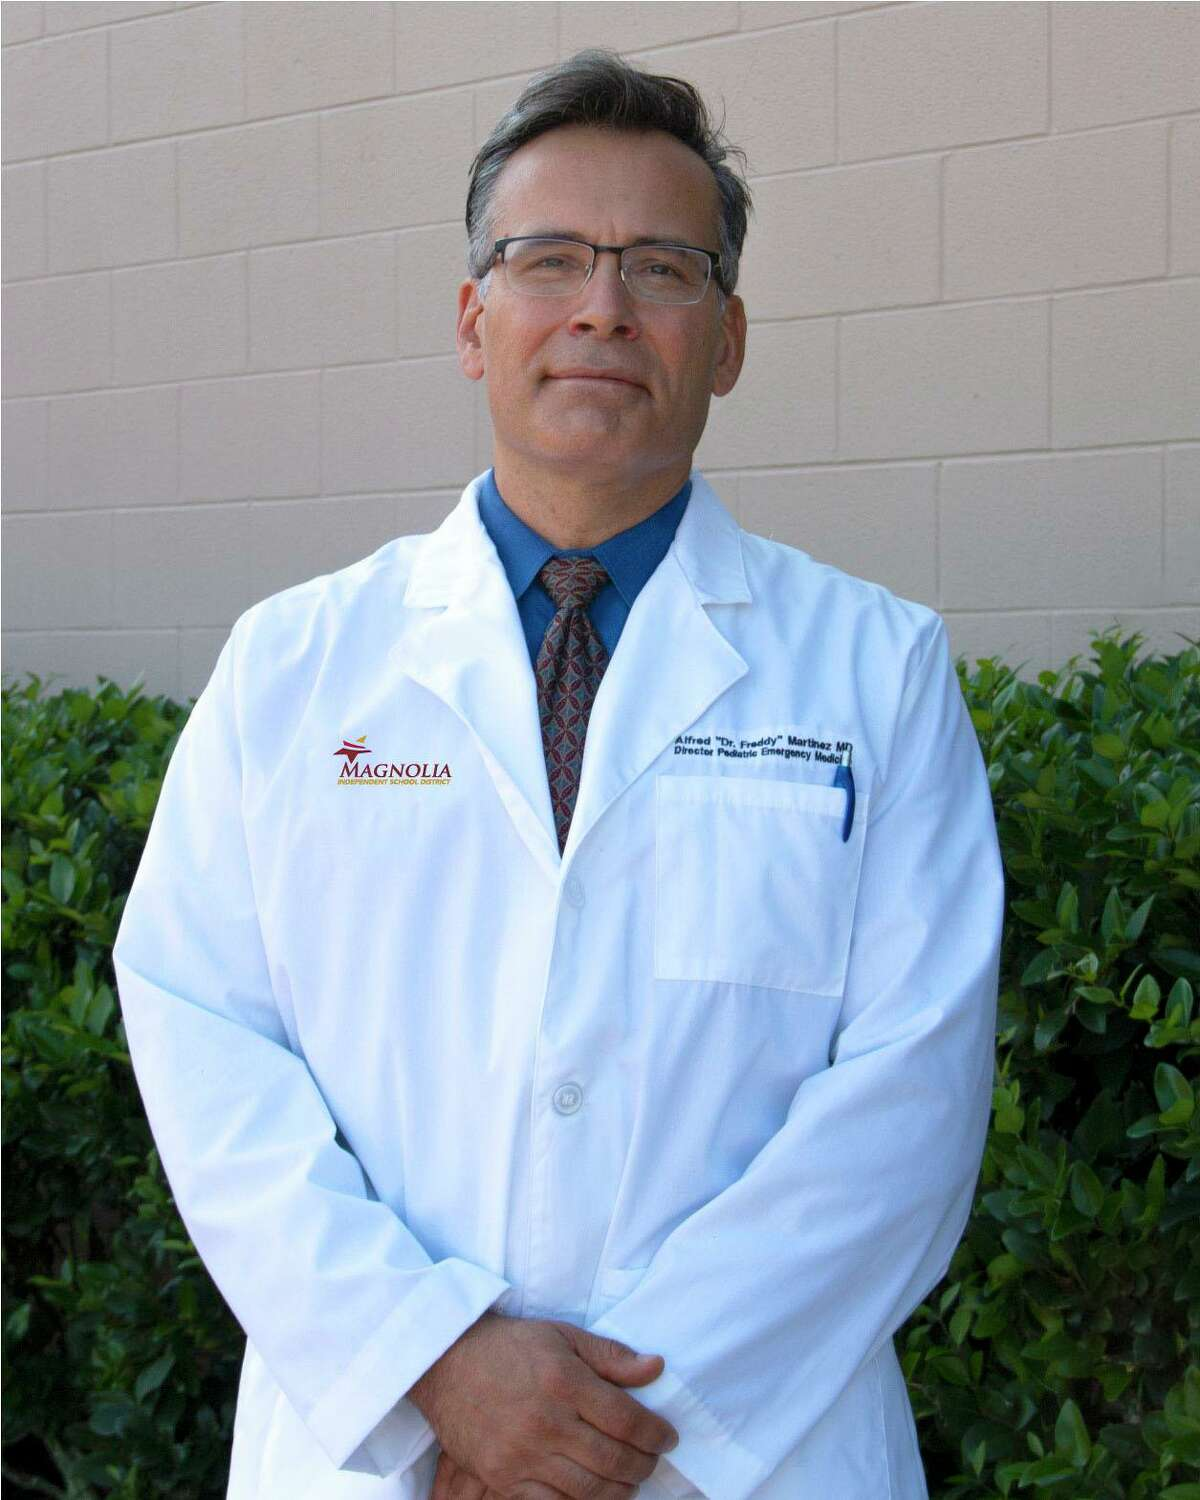 Magnolia ISD has hired Dr. Alfred Martinez - an emergency room pediatric physician - as the school district's Chief Medical Officer.